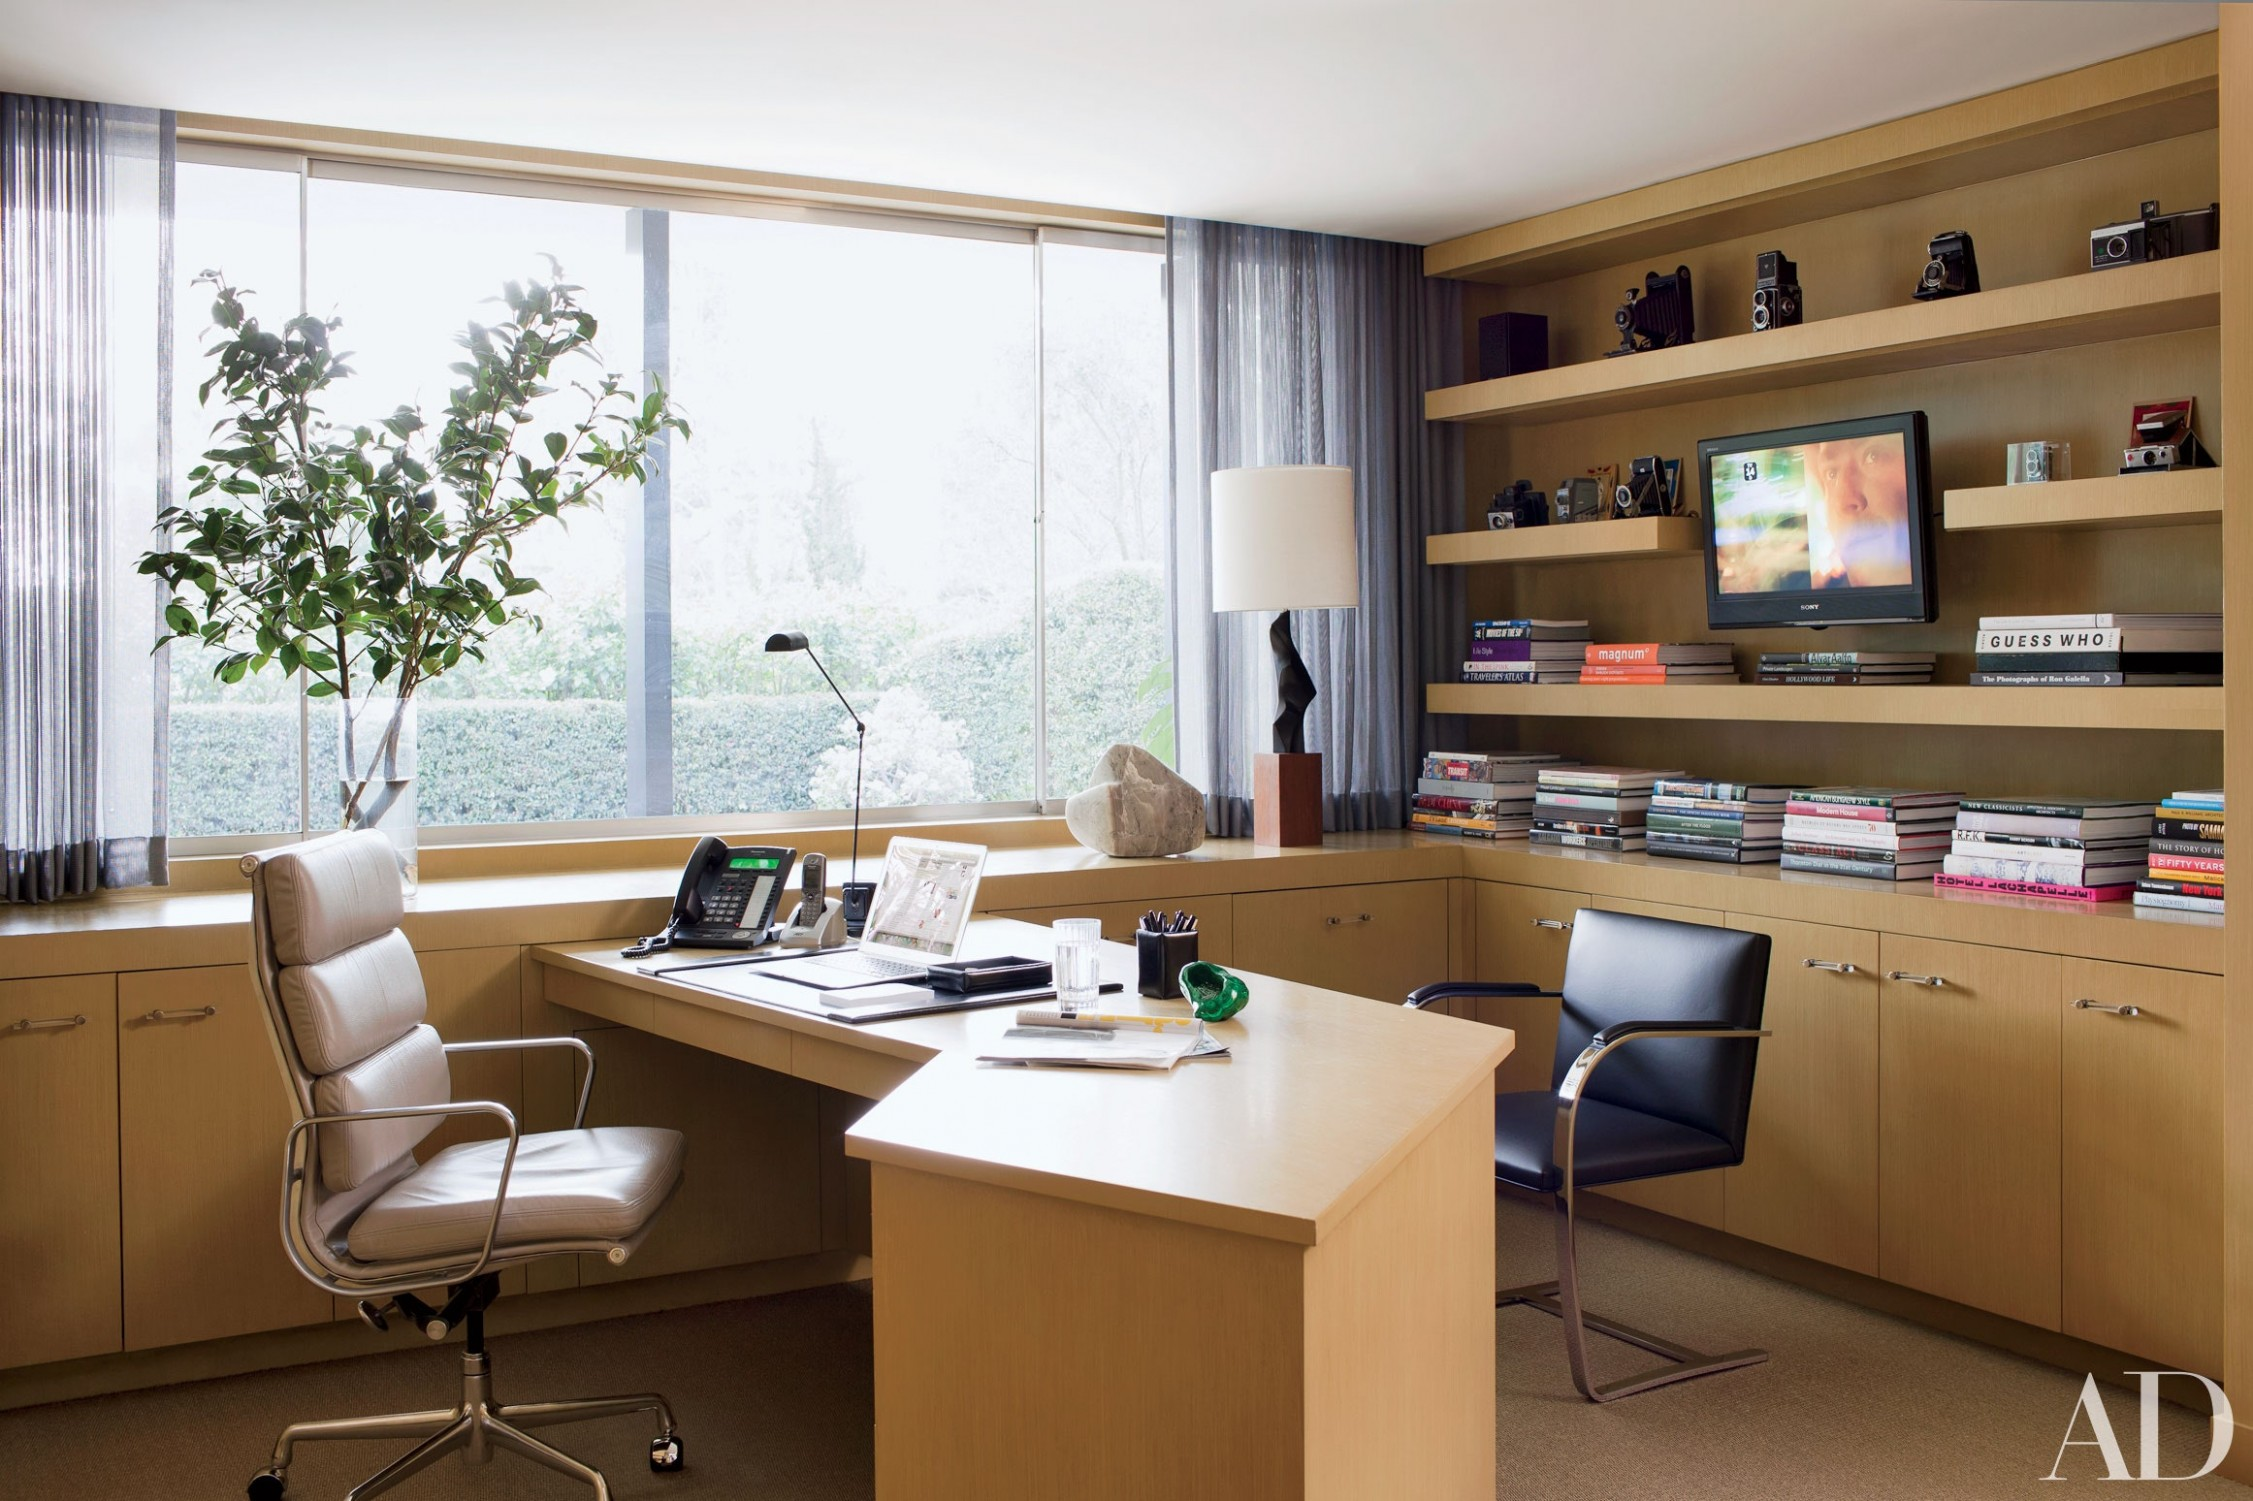 9 Home Office Ideas That Will Inspire Productivity  - Home Office Ideas Pictures 10X10 Room